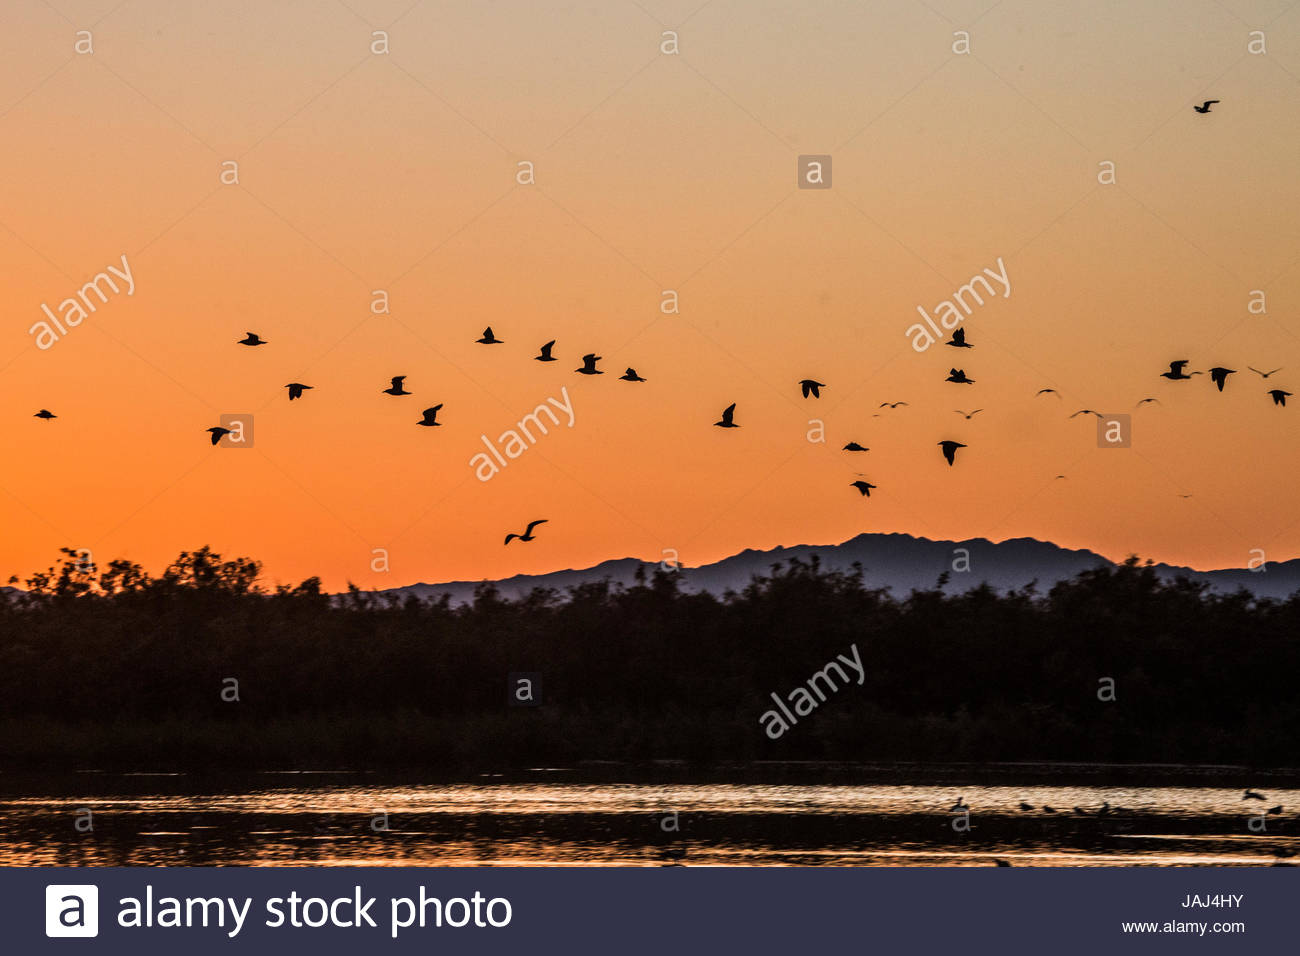 Flock of birds flying over the Salton Sea at sunset. - Stock Image